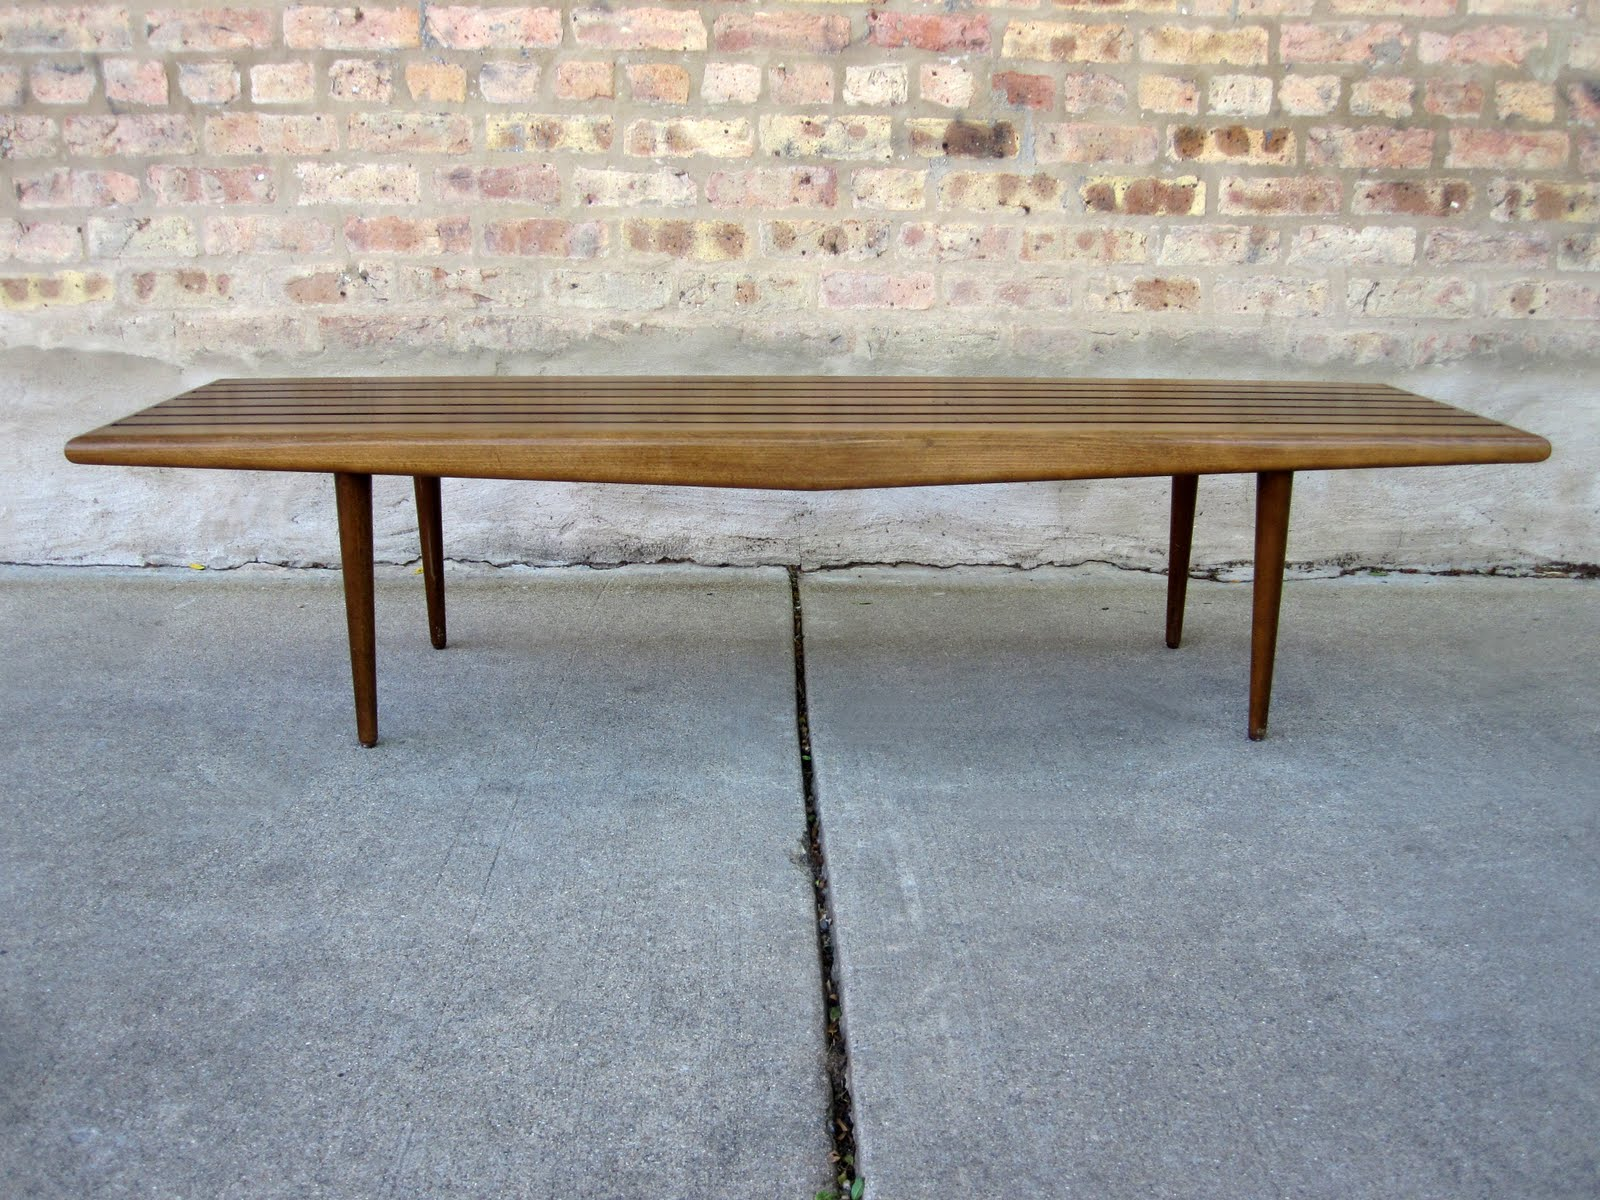 circa midcentury: 'danish modern' slat bench / coffee table